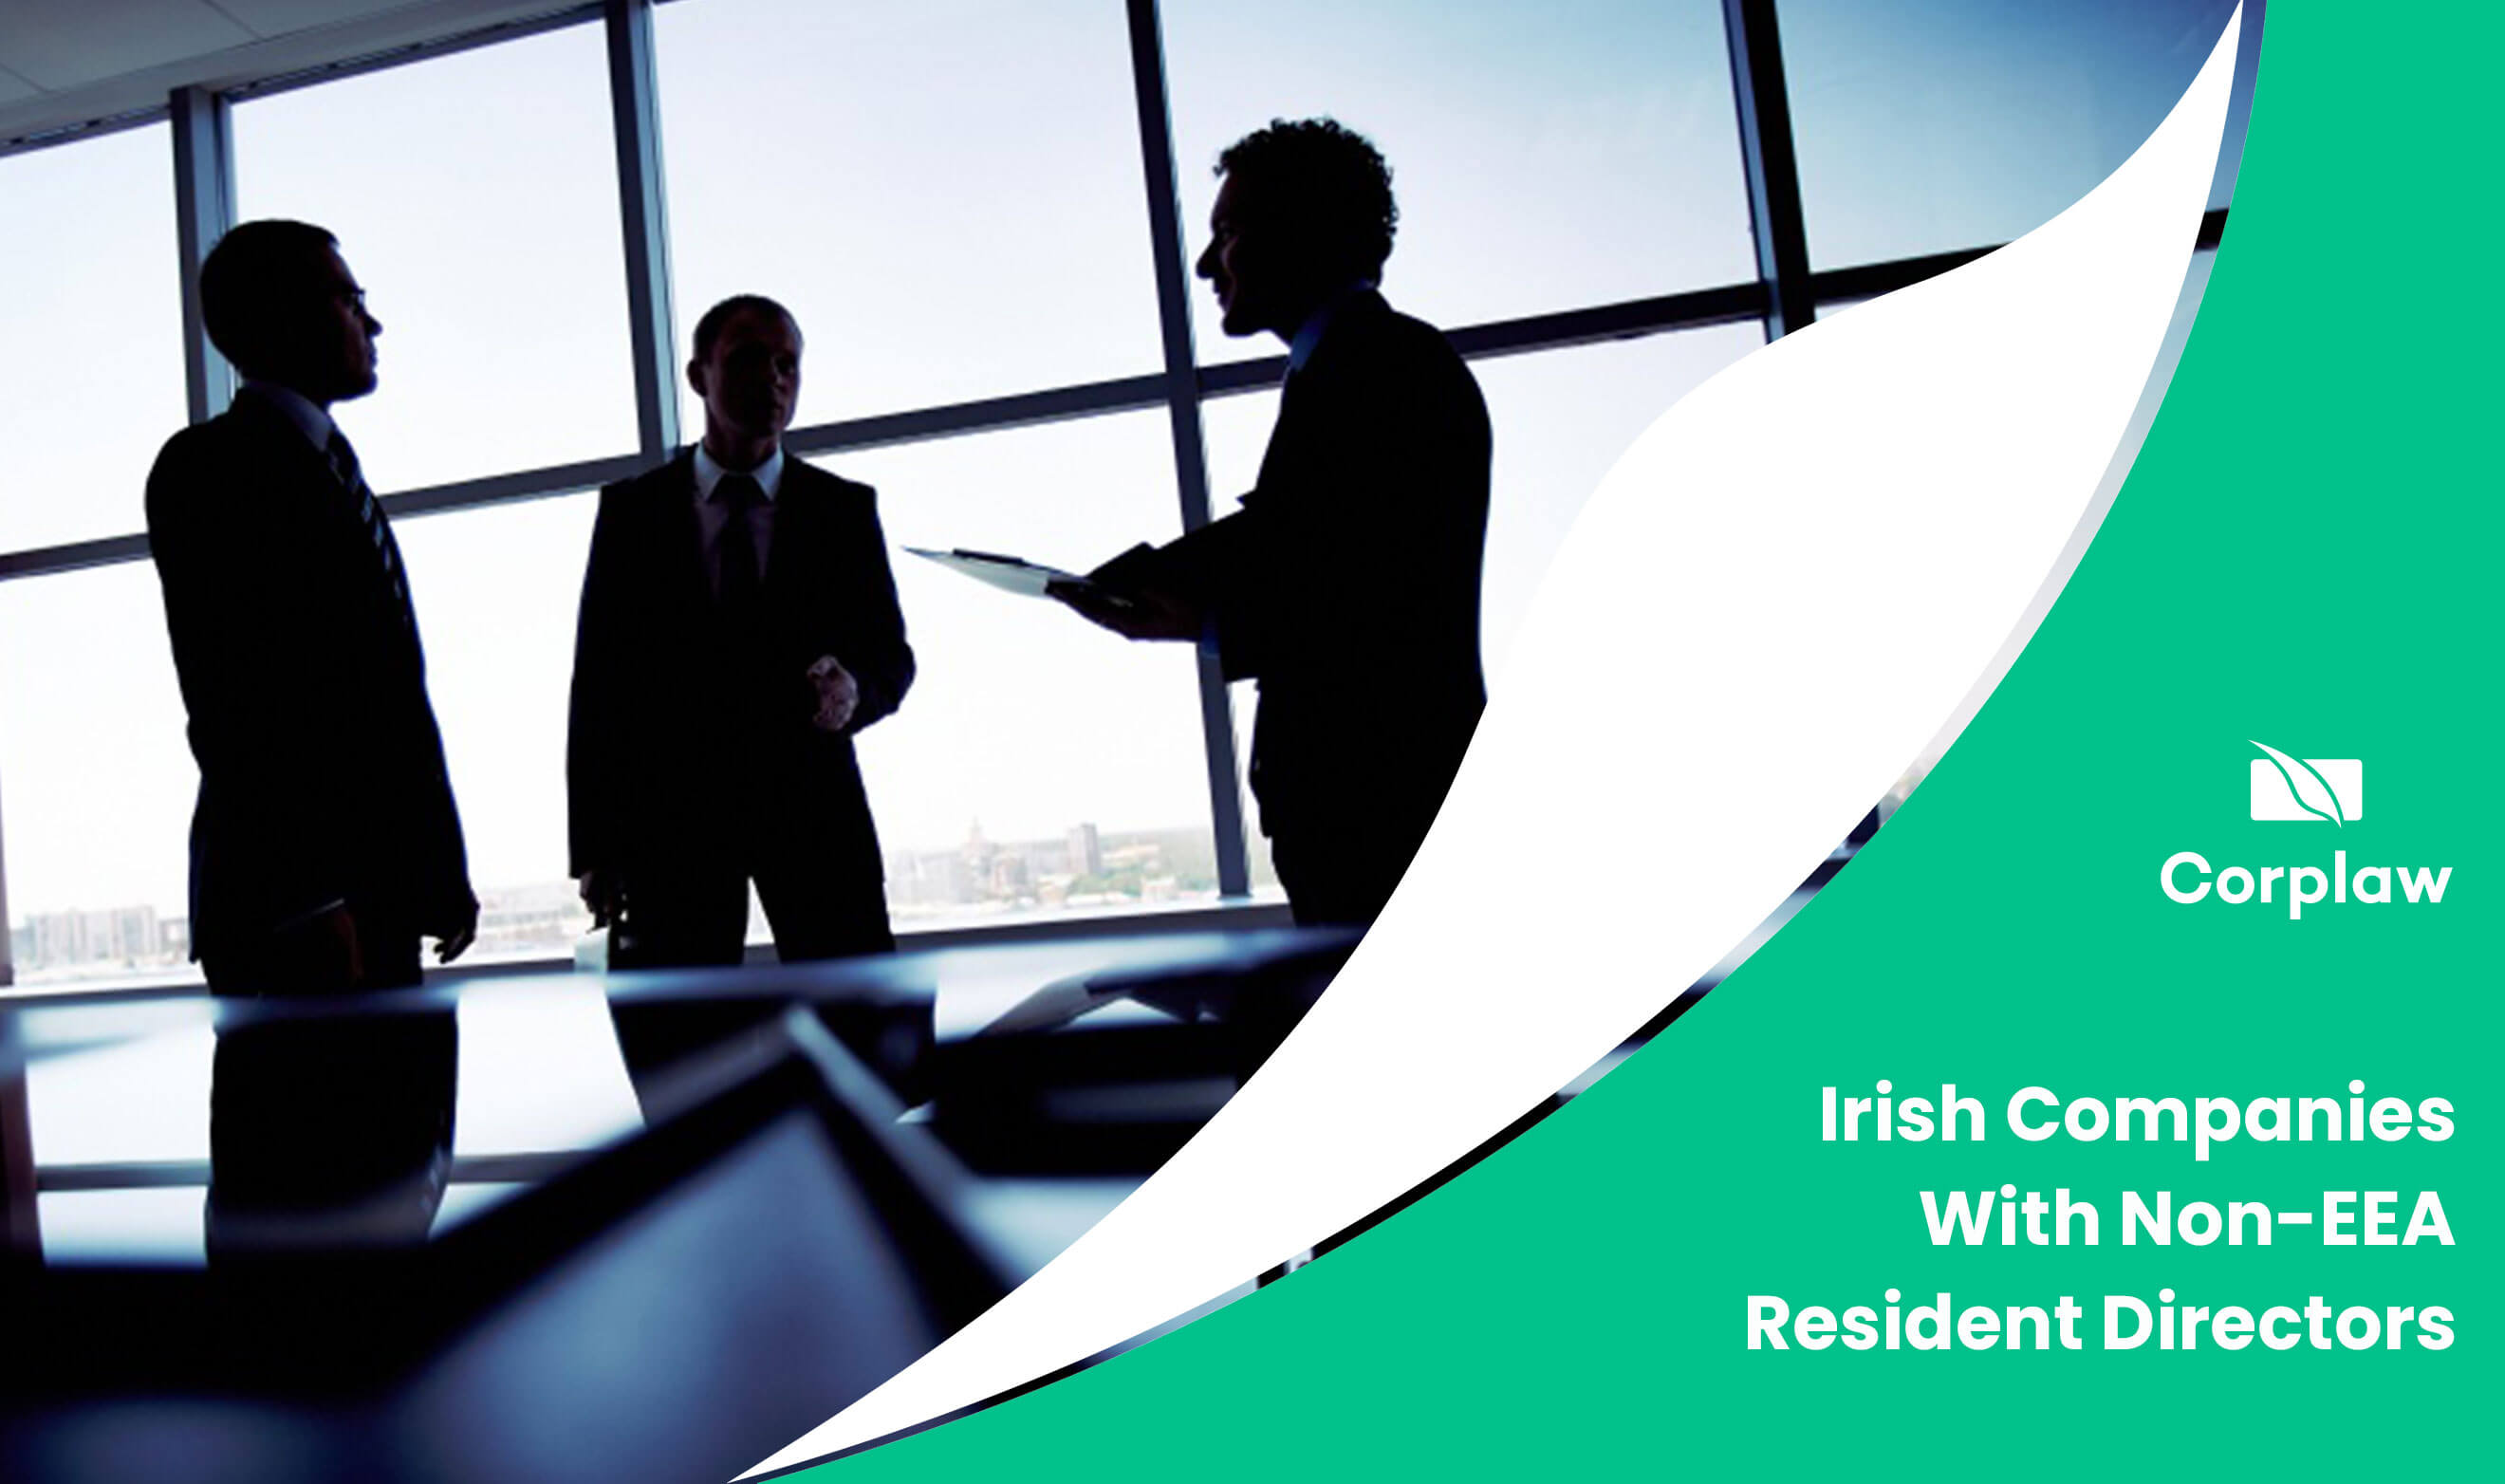 Corplaw-Blog-Irish-Companies-With-Non-EEA-Resident-Directors